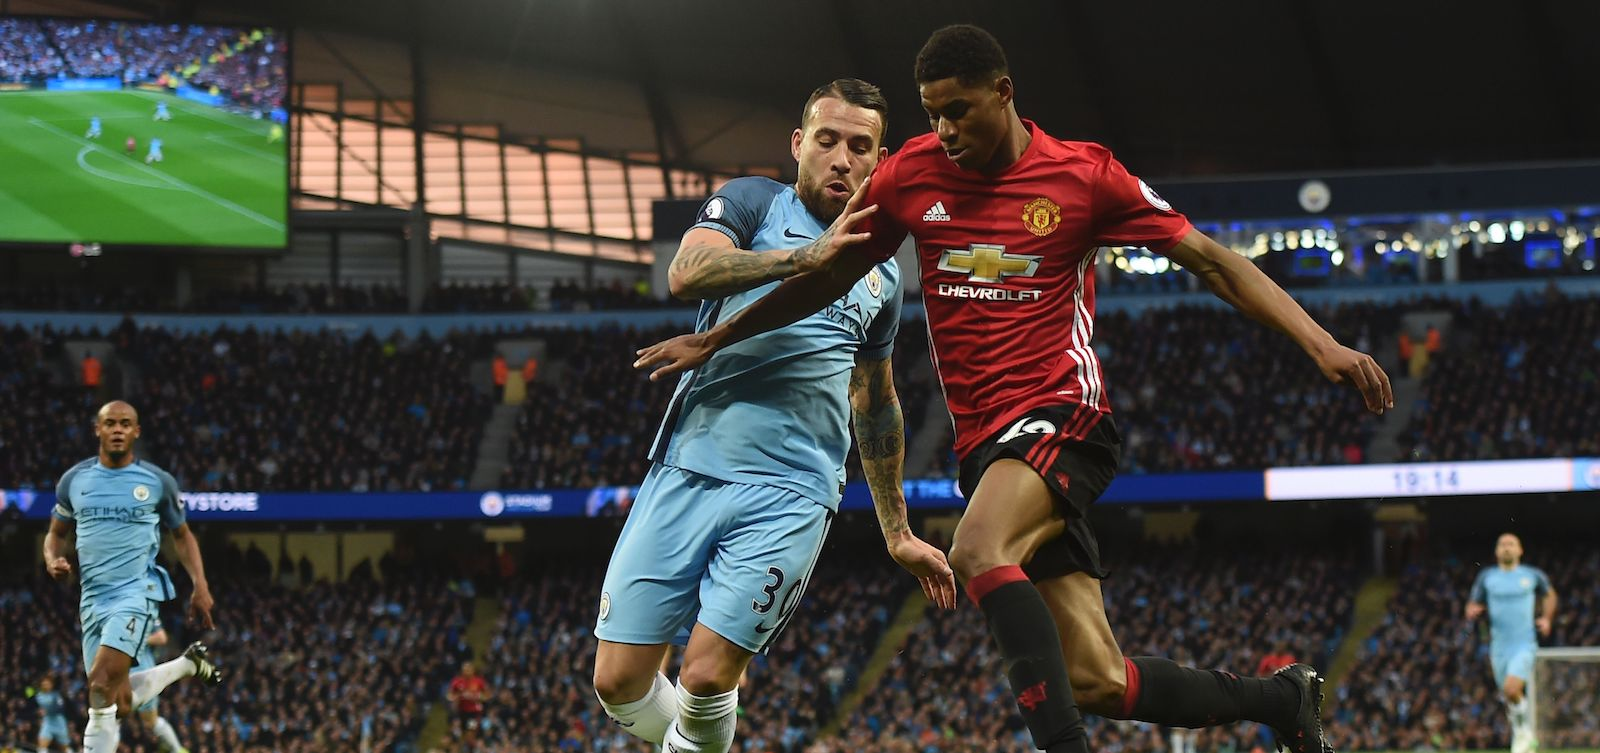 Ji-sung Park believes Marcus Rashford can be one of Manchester United's best players